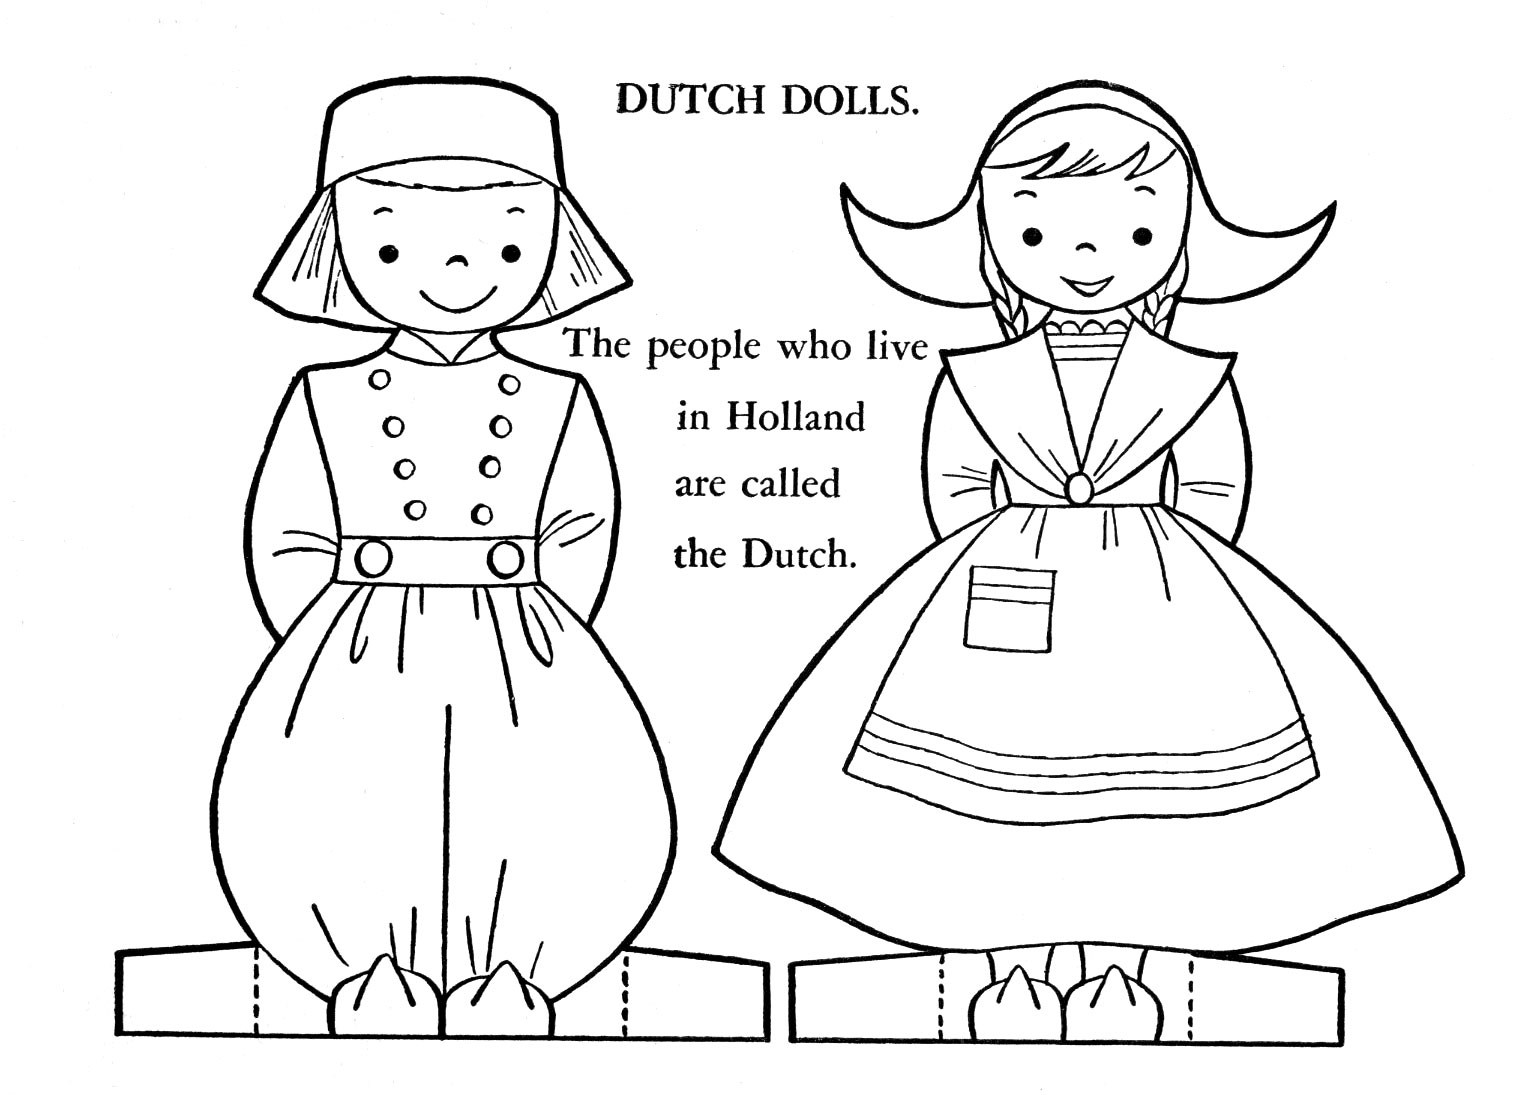 hollands national flag coloring pages - photo#46